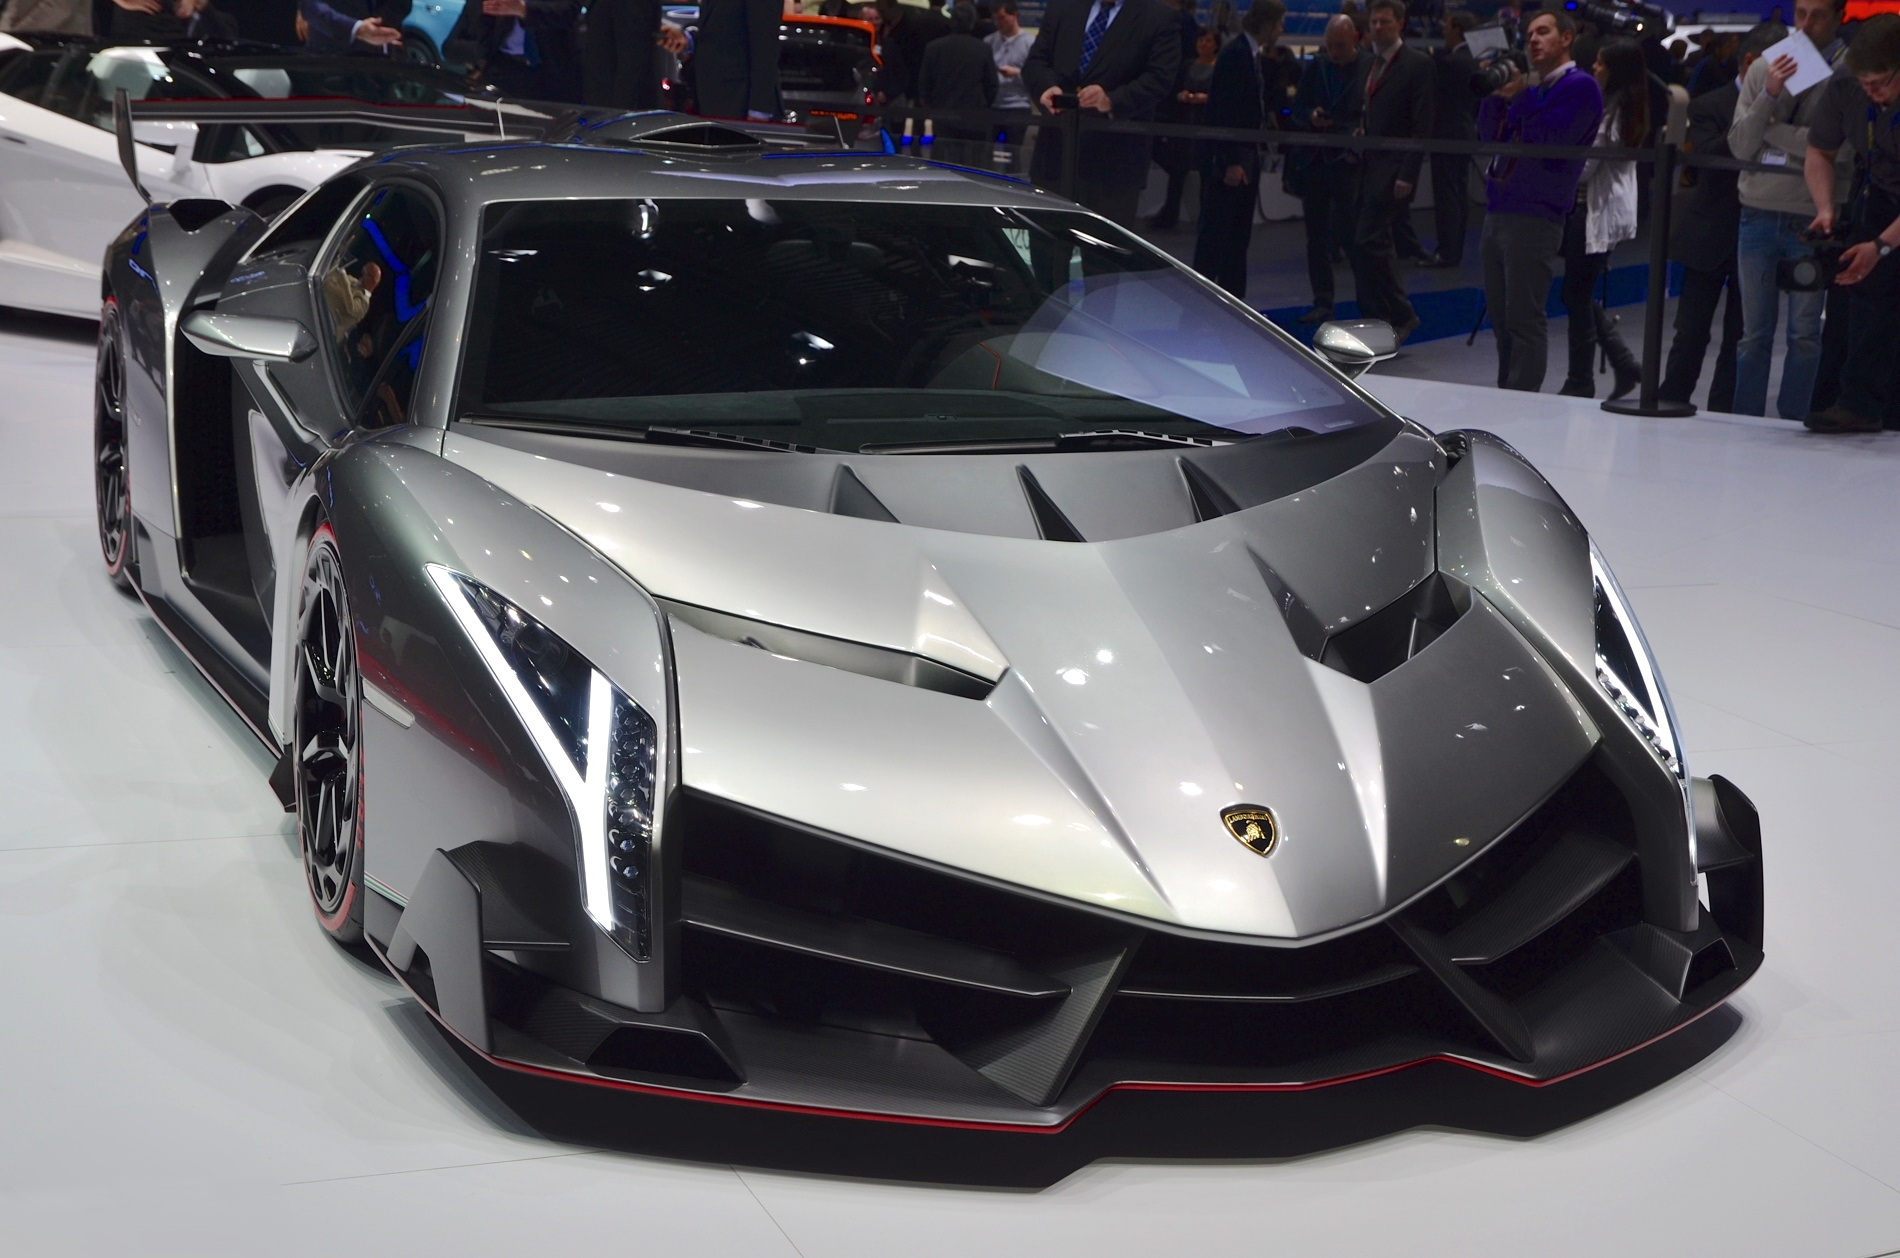 Lamborghini Veneno Vehicle Lamborghini K Ultra Hd Exquisite 1900x1258